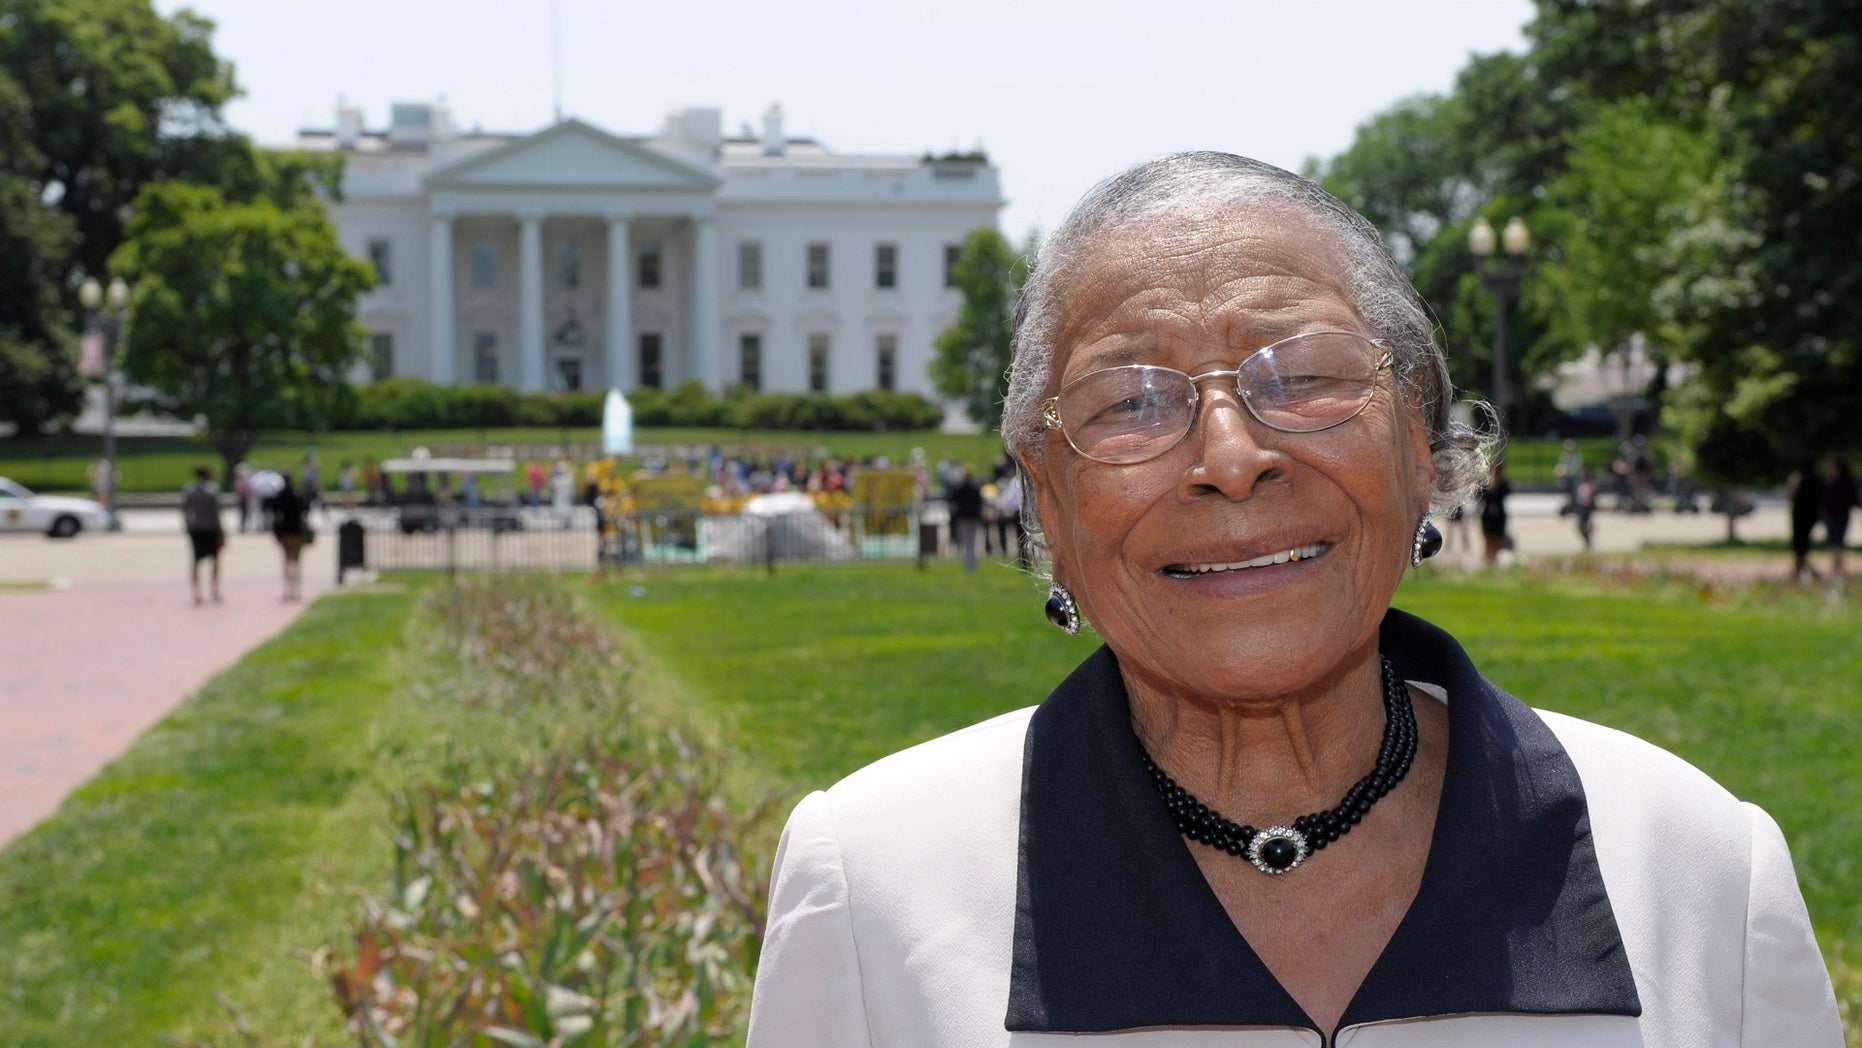 Recy Taylor, who died on Dec. 28, was recognized by Oprah Winfrey during the 2018 Golden Globes. Taylor sought justice after she was abducted and brutally raped by six white men in 1944.